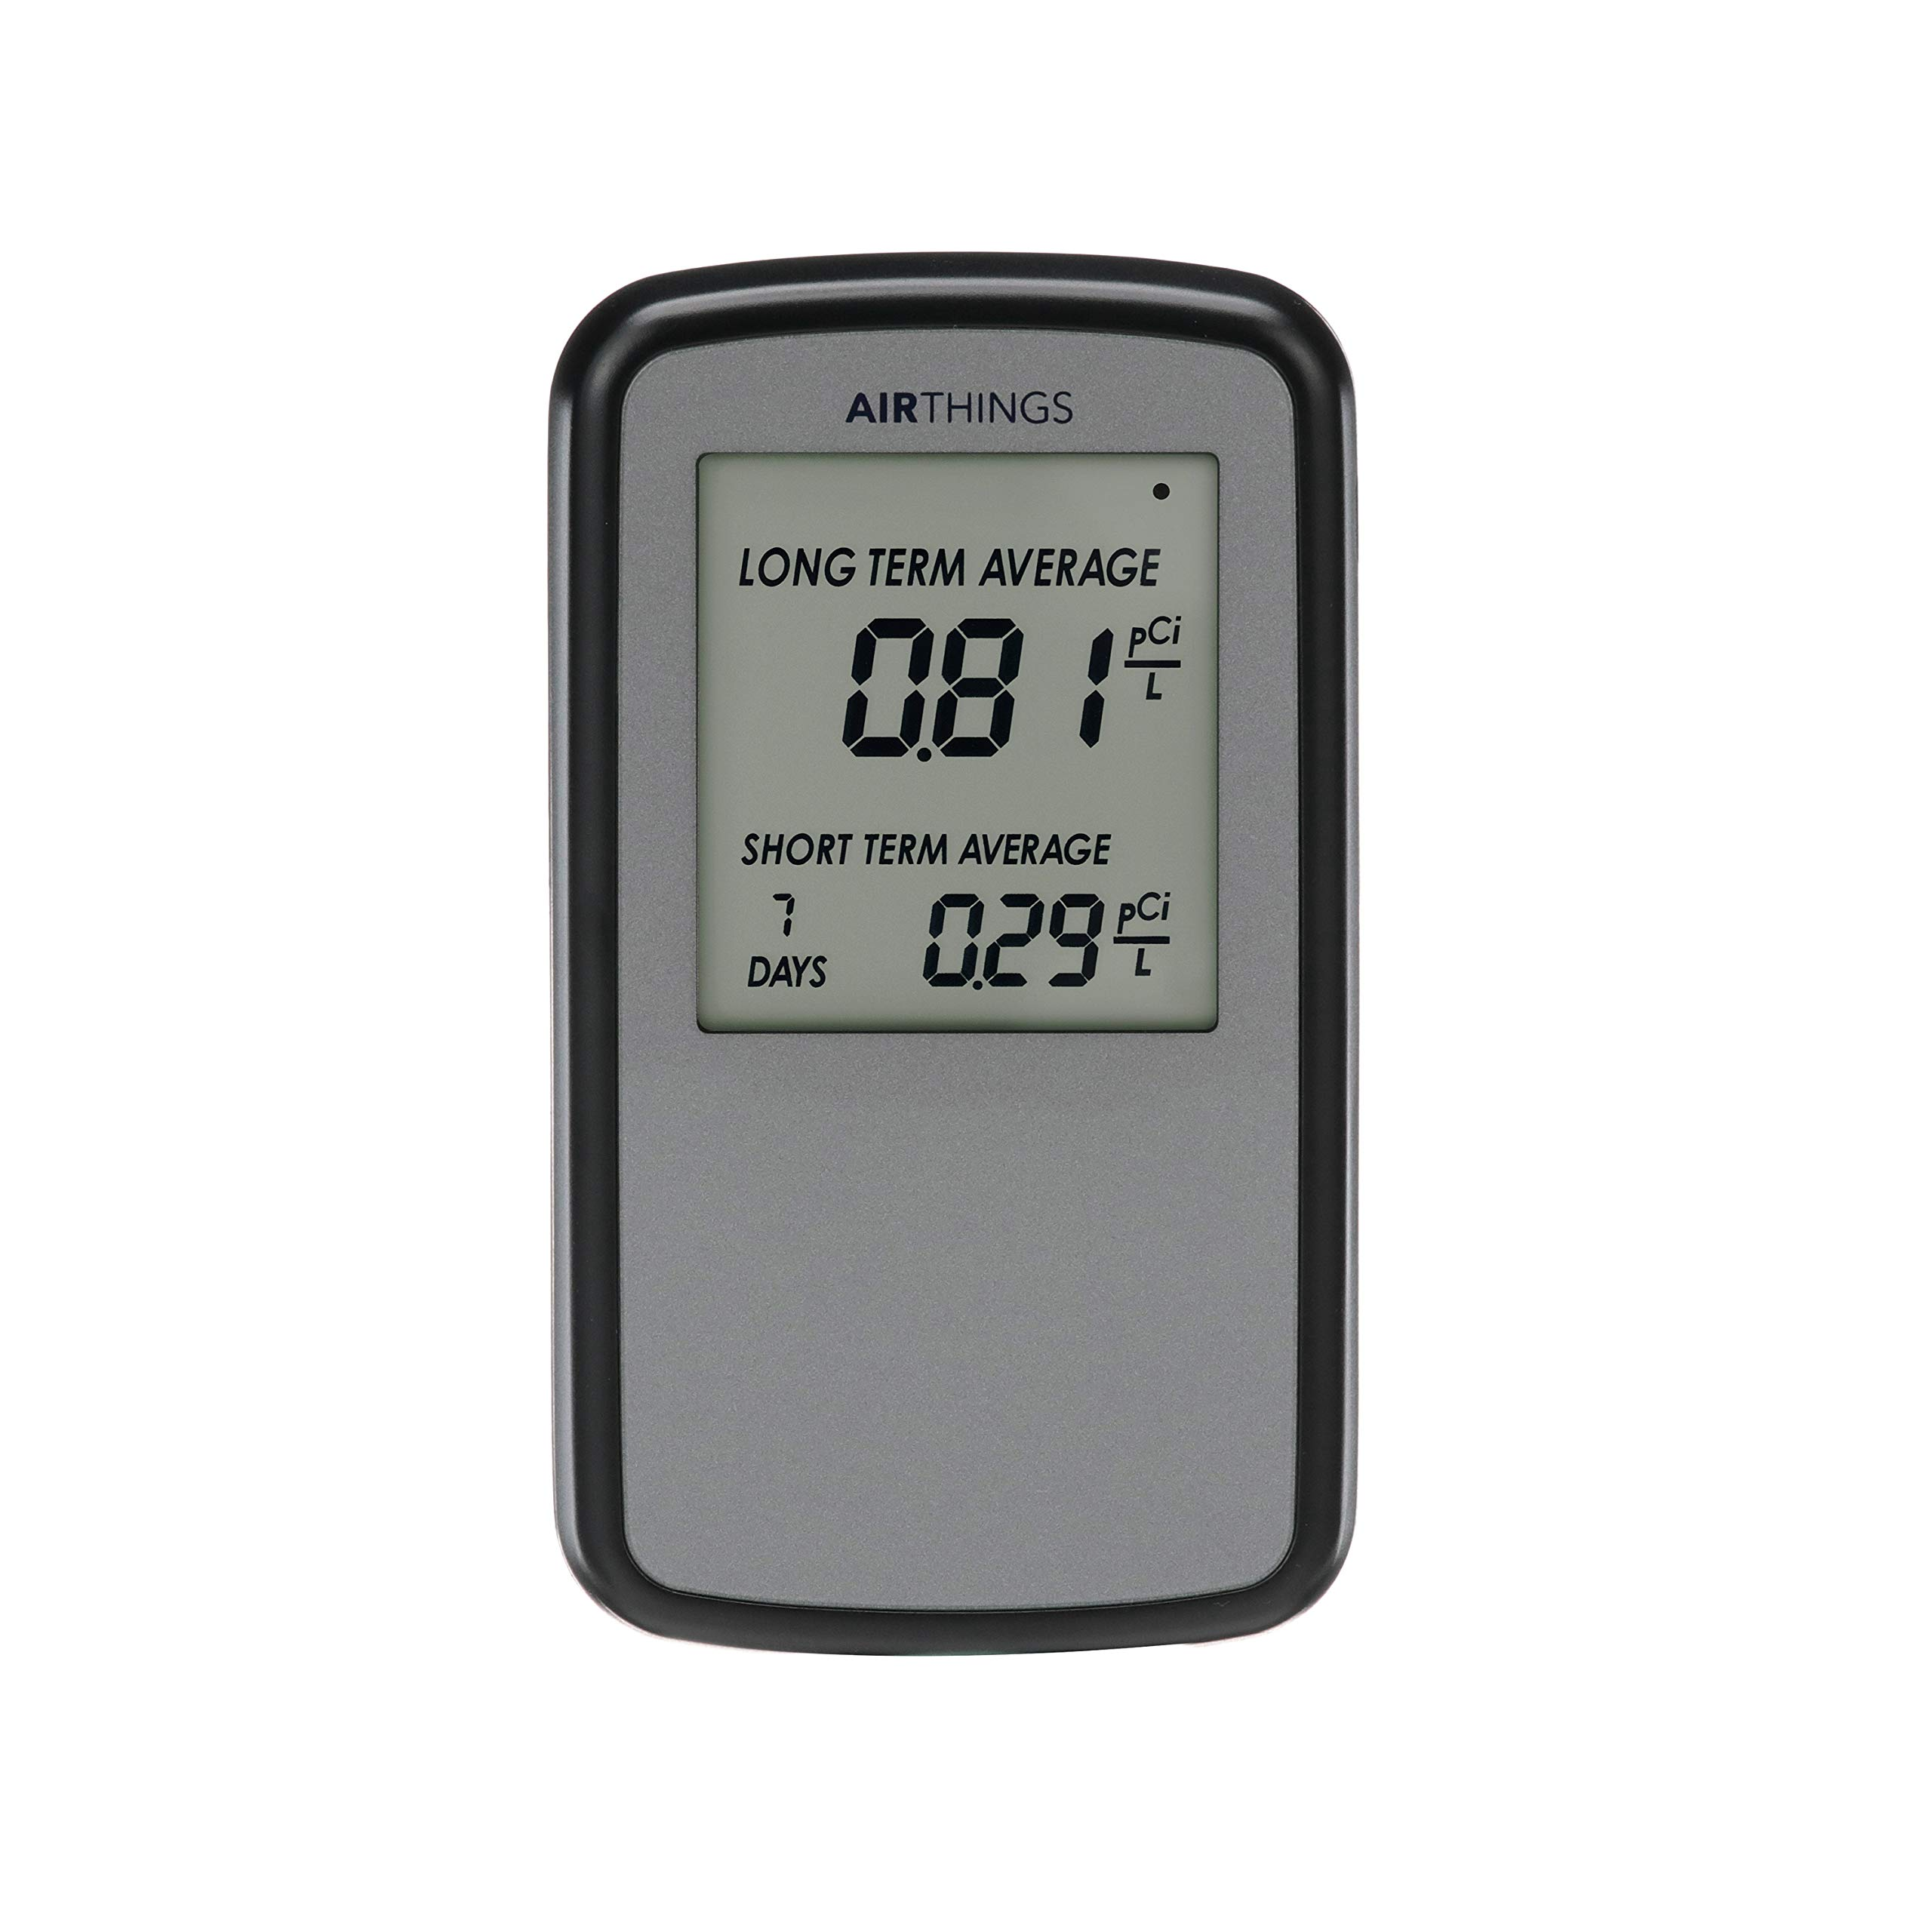 Corentium Home Radon Detector by Airthings 223 Portable, Lightweight, Easy-to-Use, (3) AAA Battery Operated, USA Version, pCi/L by Airthings